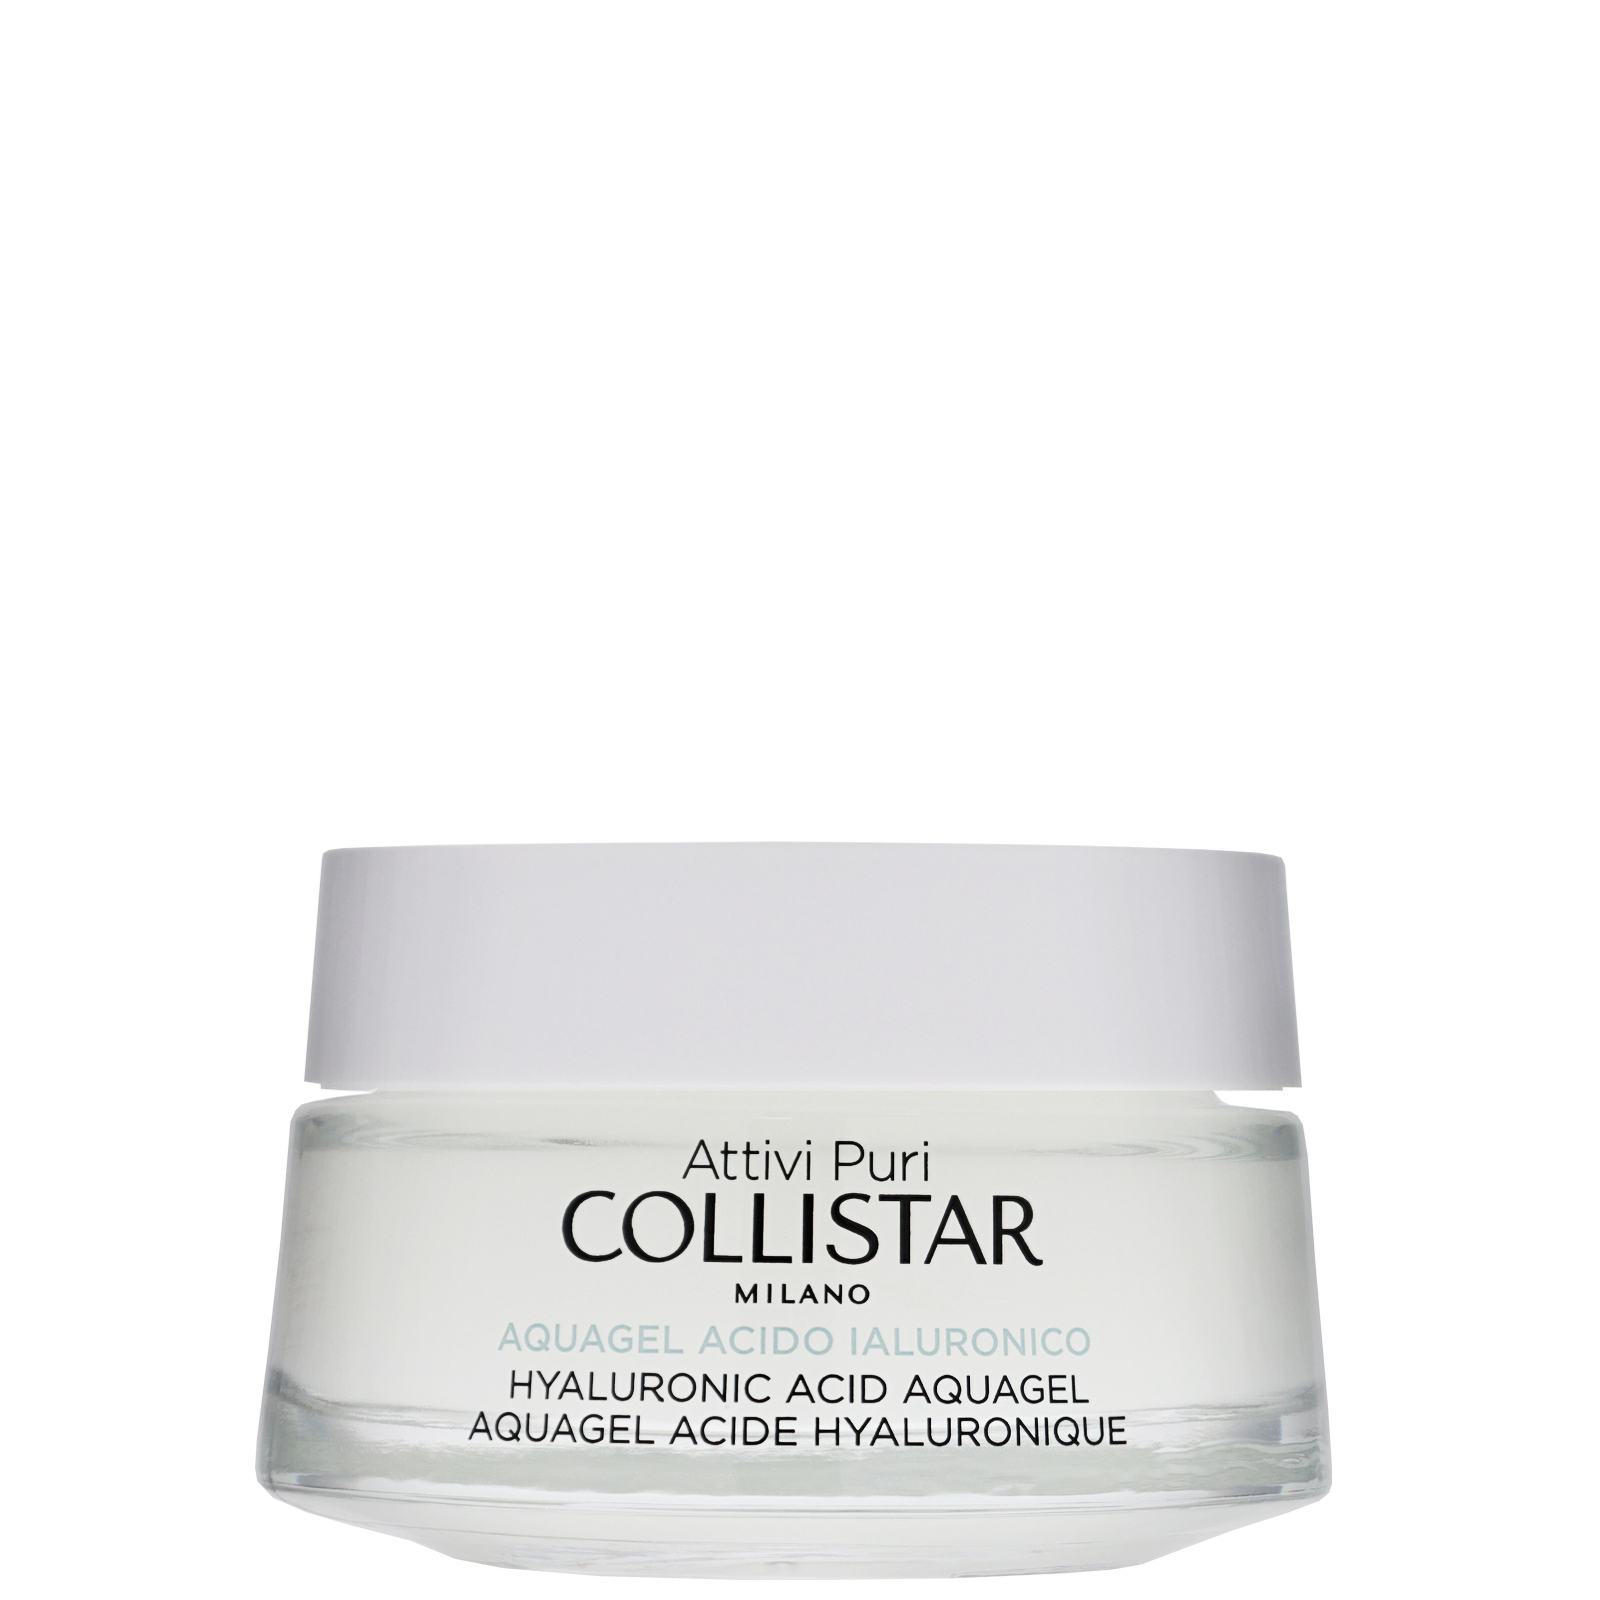 Collistar Specialties & Treatments Hyaluronic Acid Aquagel 50ml